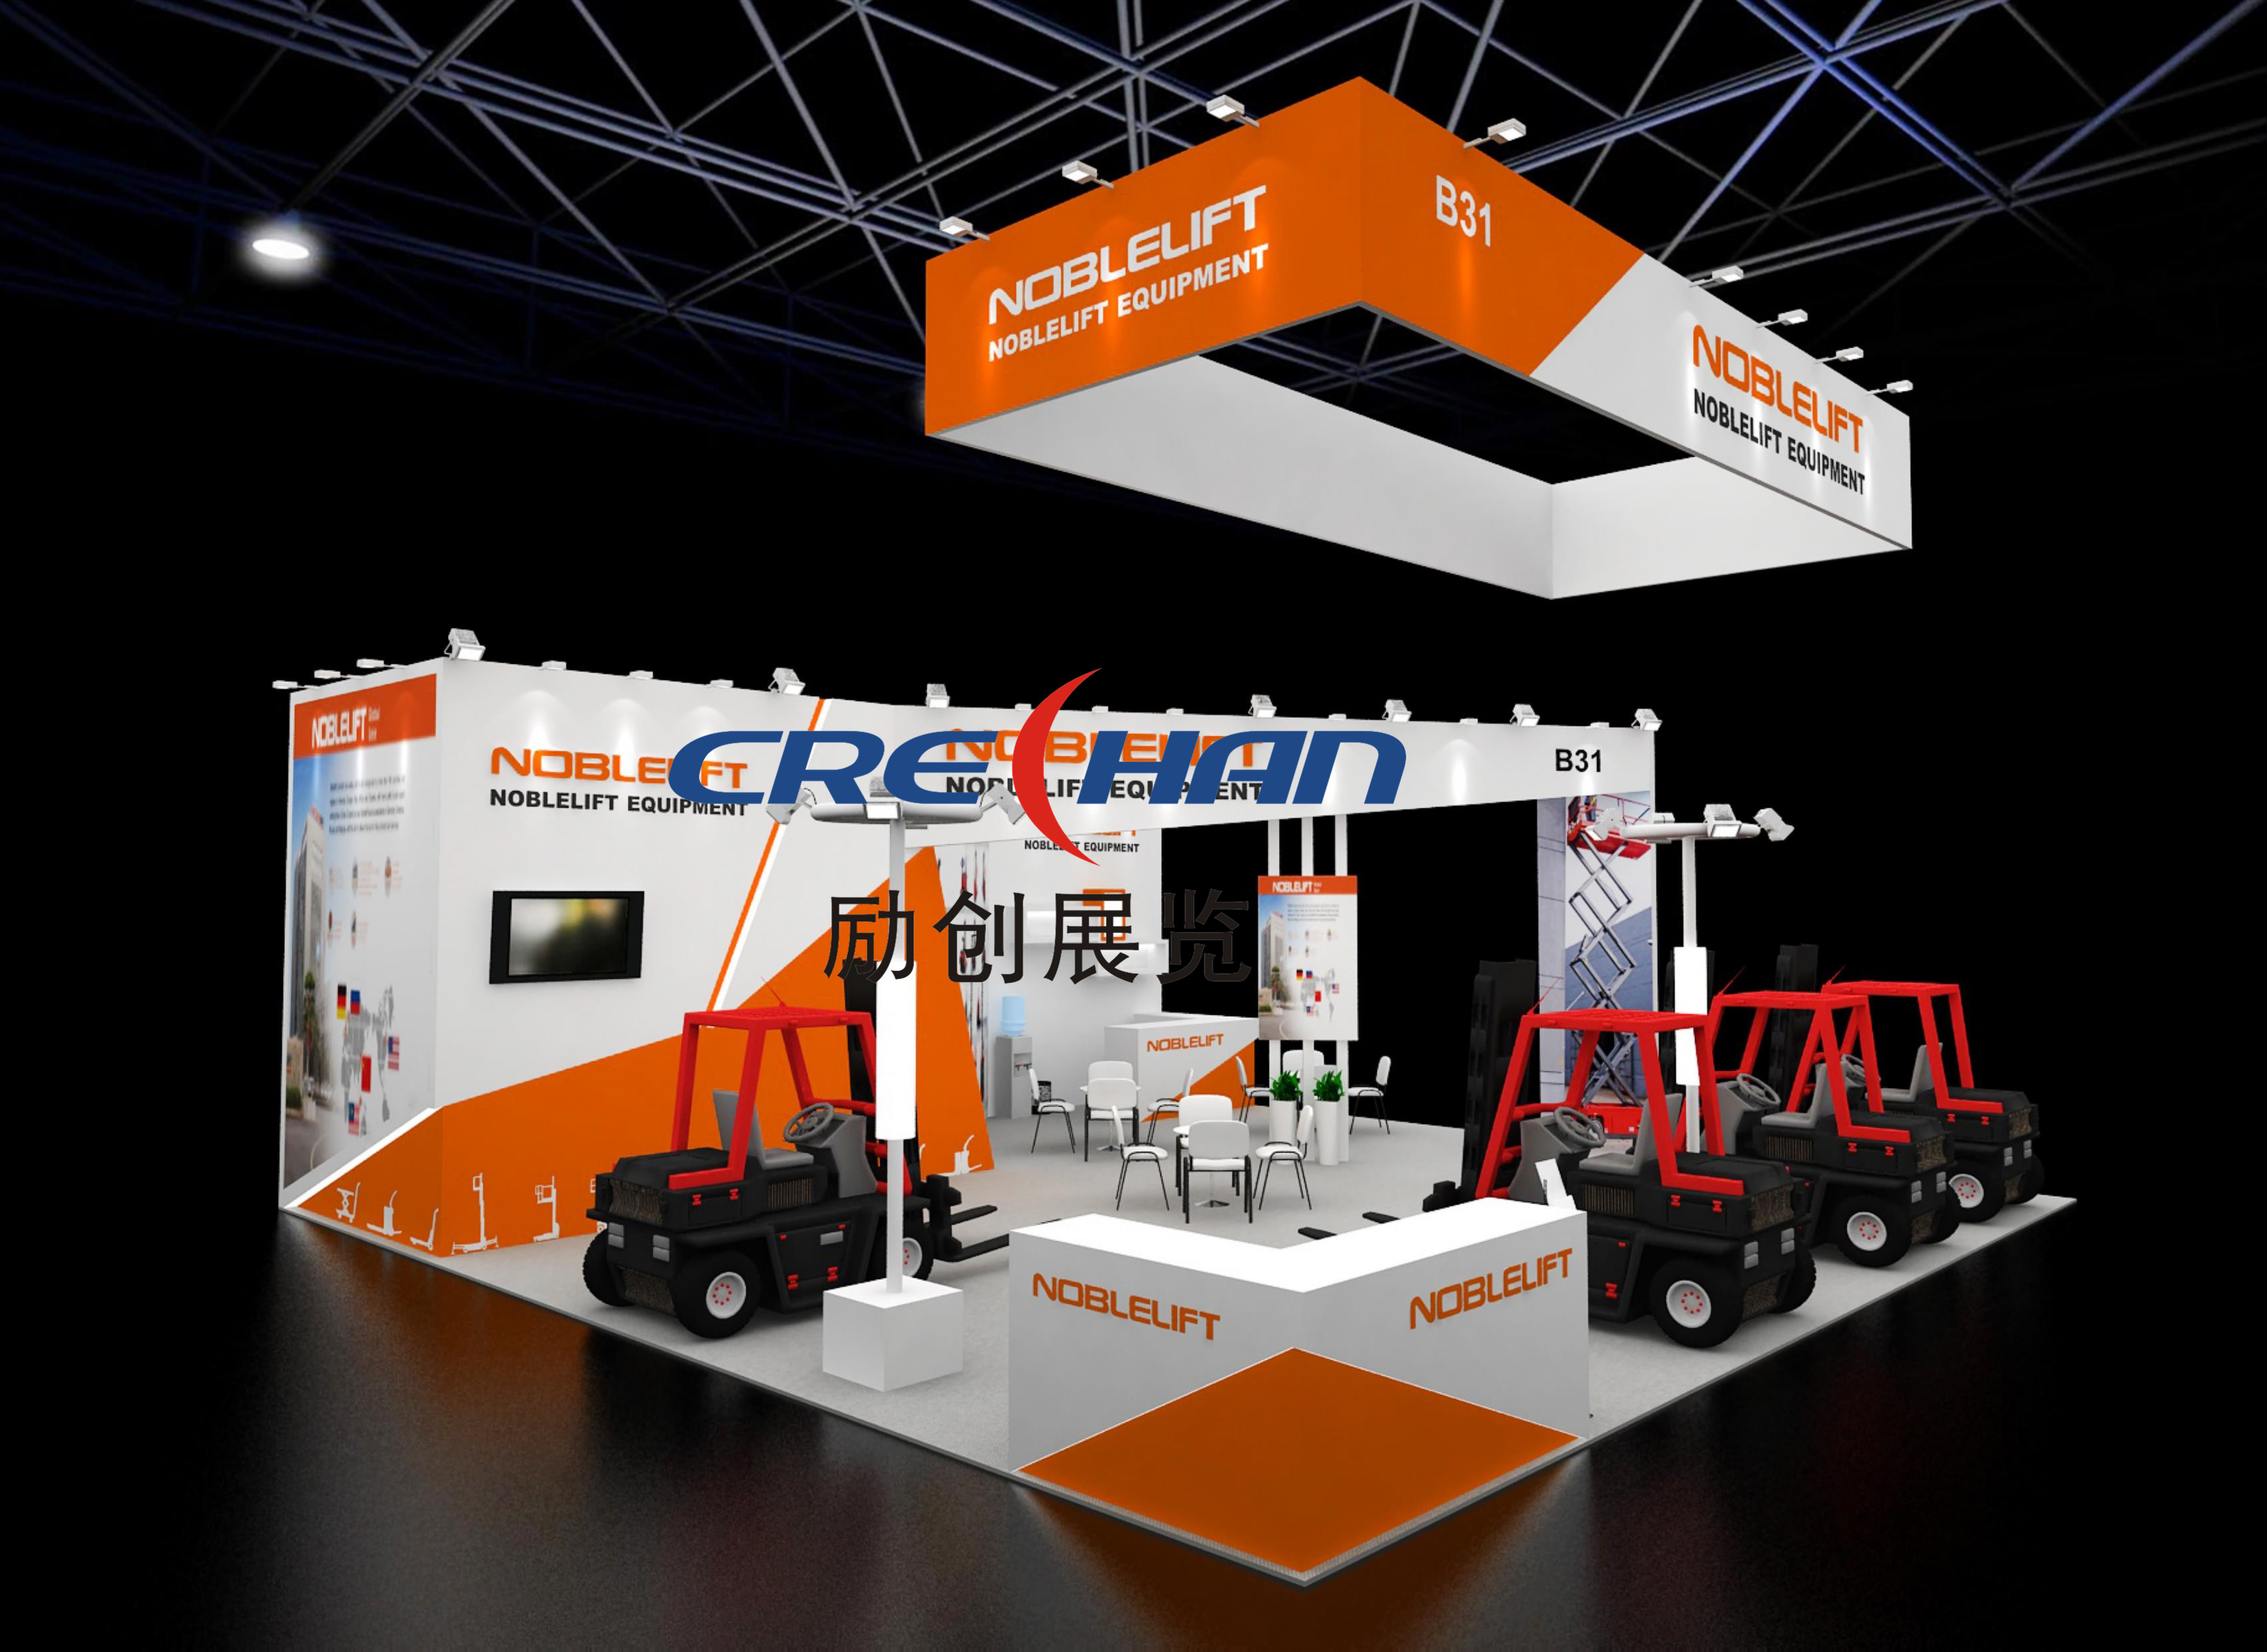 Offer Complex Exhibition Stands design and Construction by Hangzhou Crechan Exhibition